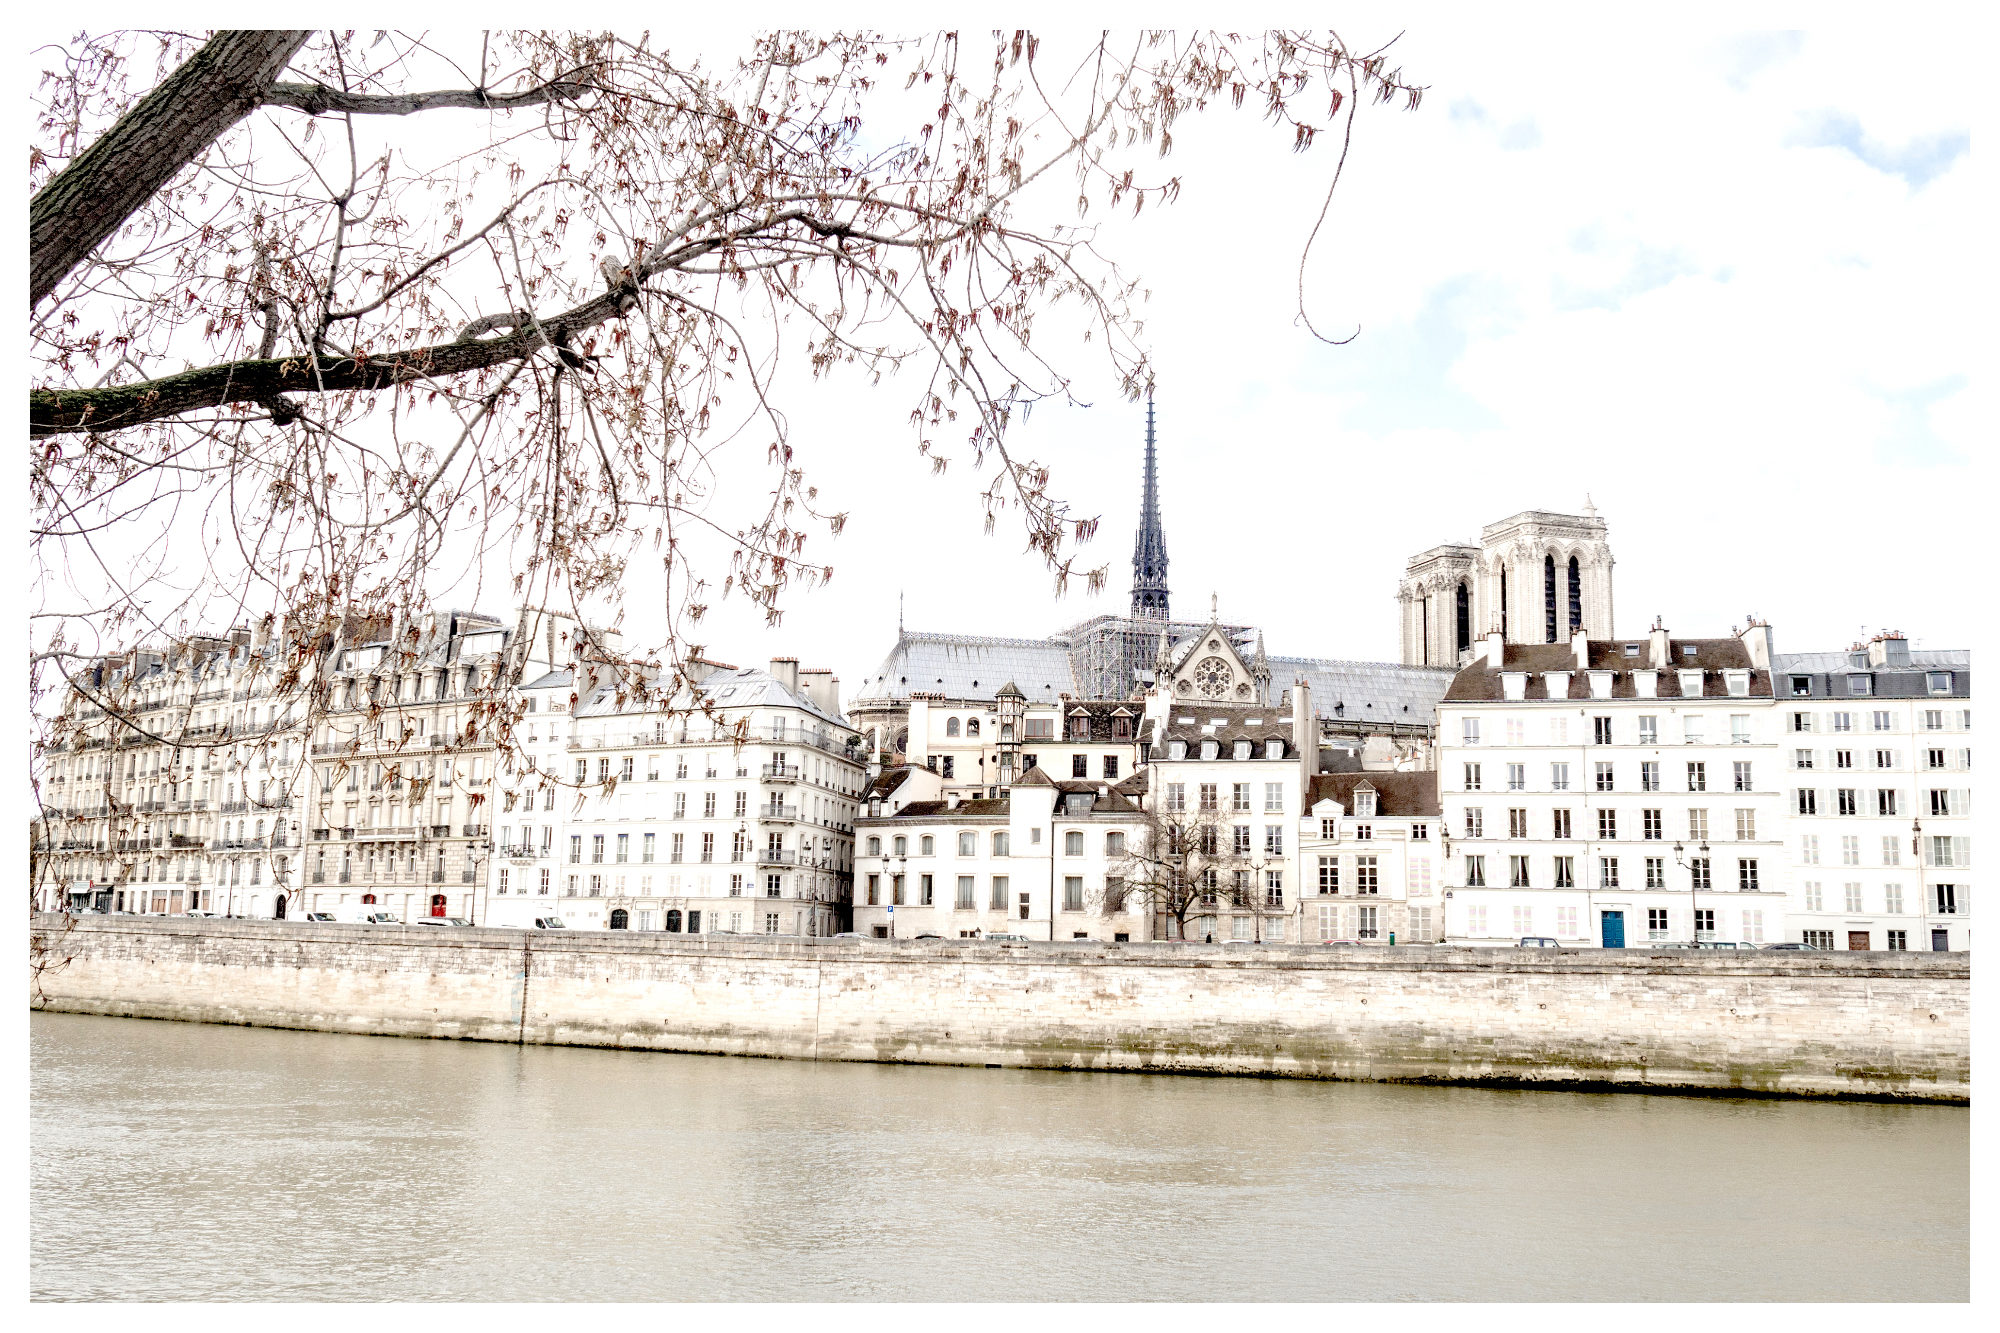 A view of the River Seine lined by beautiful white stone buildings and Notre Dame Cathedral peeping out the top.